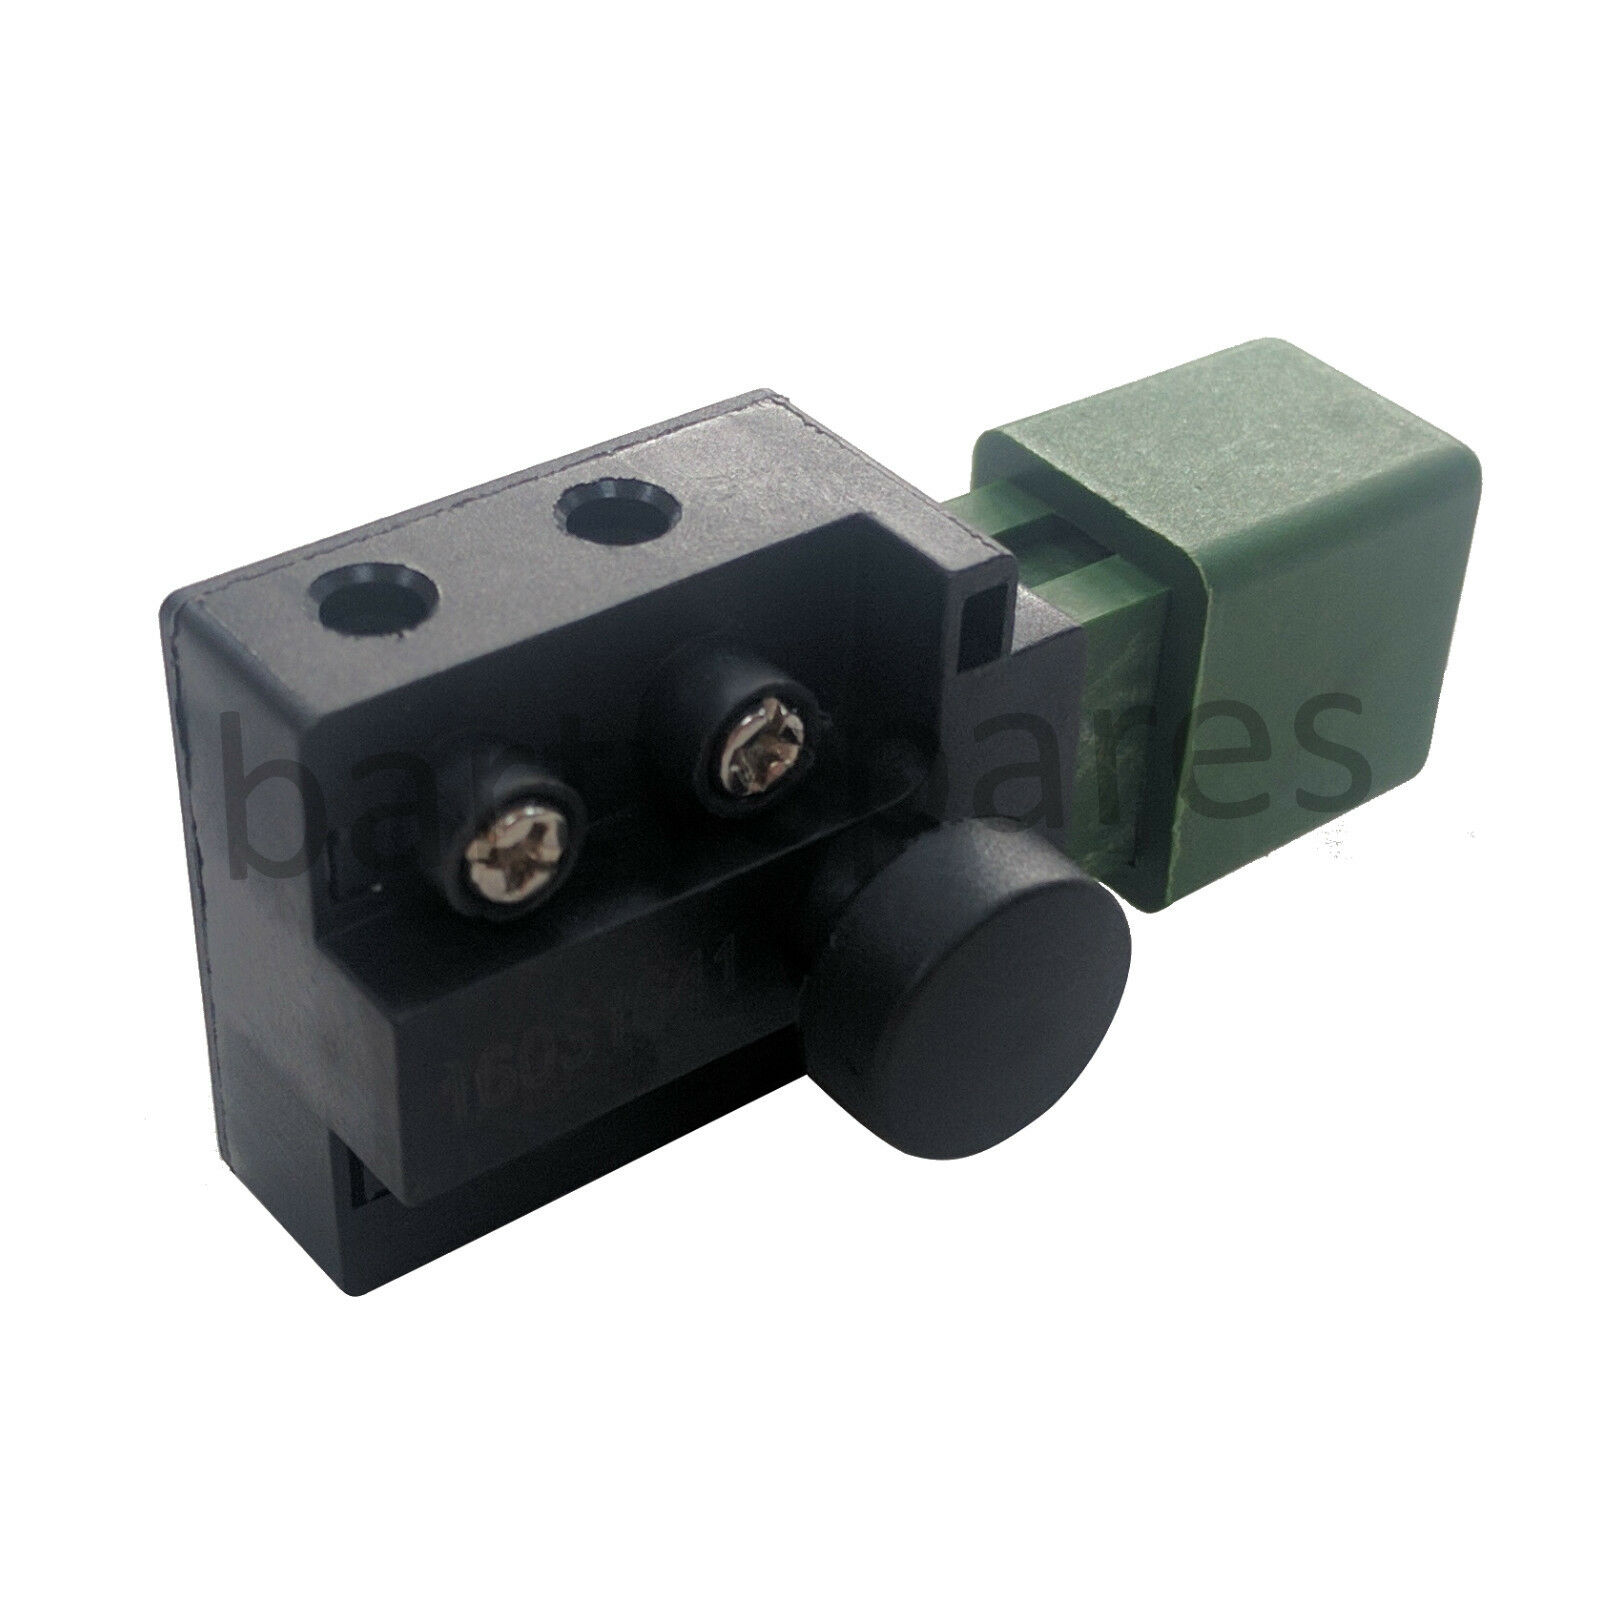 Genuine Flymo On /& Off Switch Suitable For Most Flymo Lawnmowers 522720901